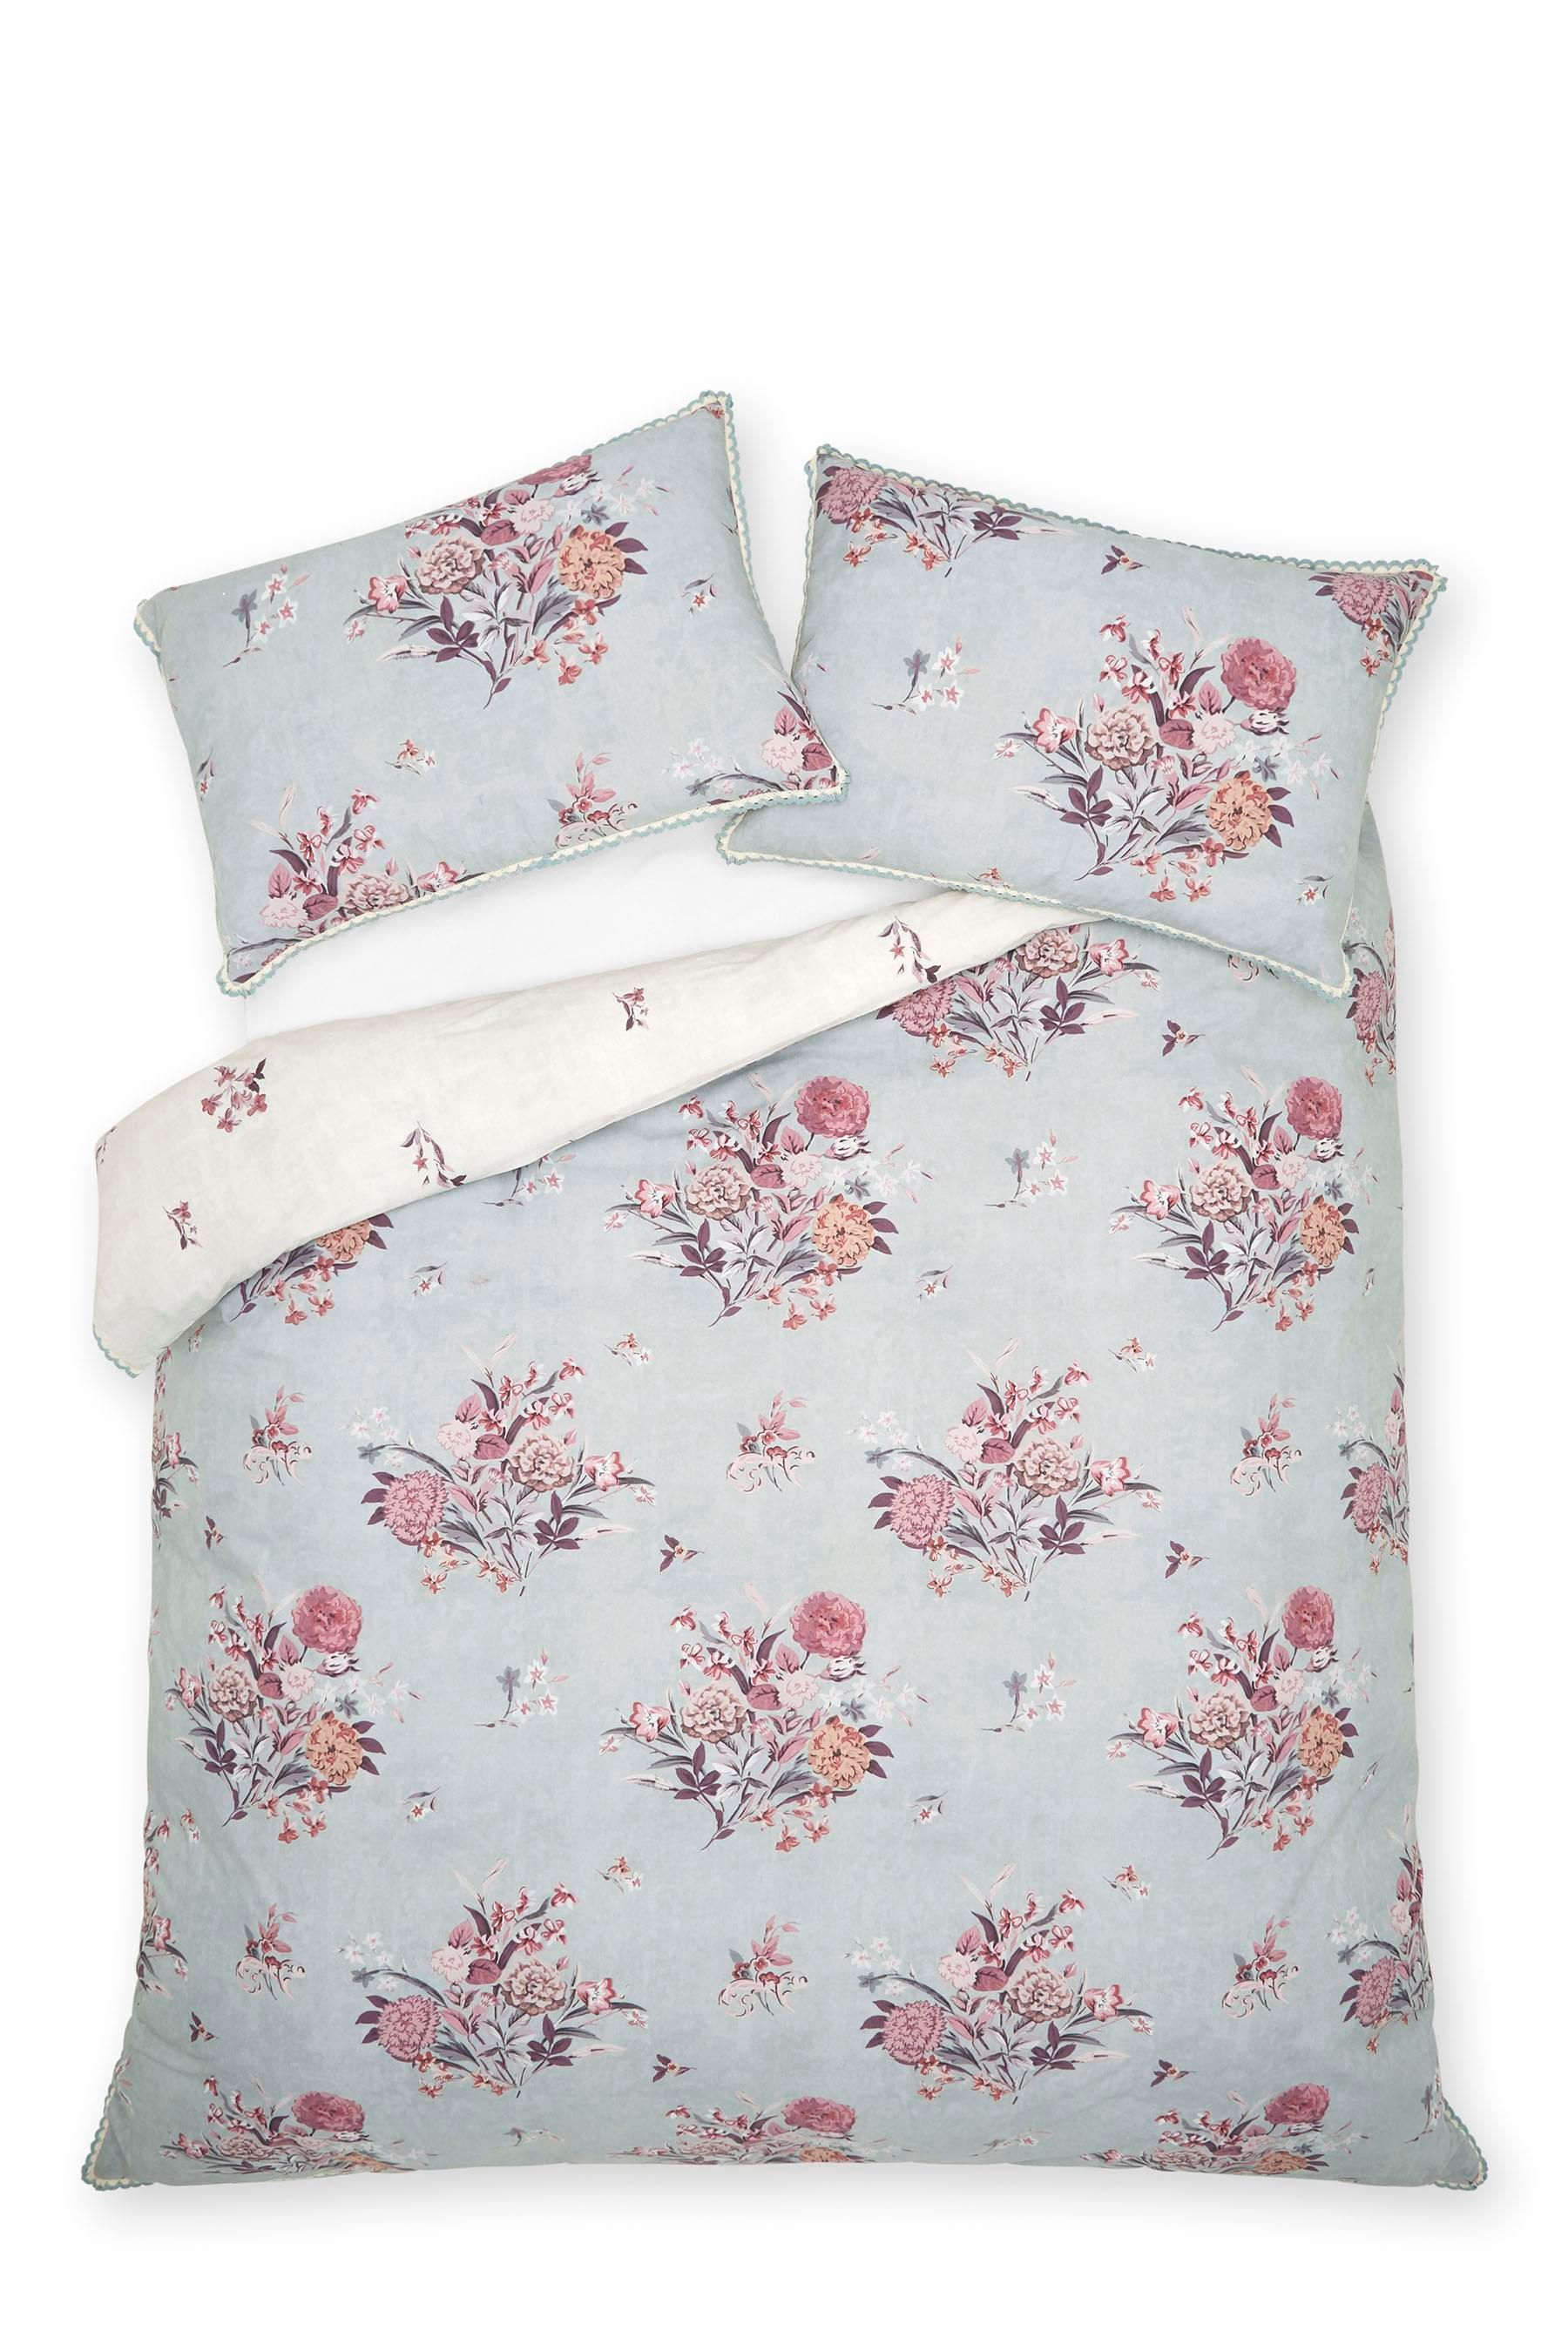 Buy Cotton Rich Stonewashed Effect Floral Bedset from the